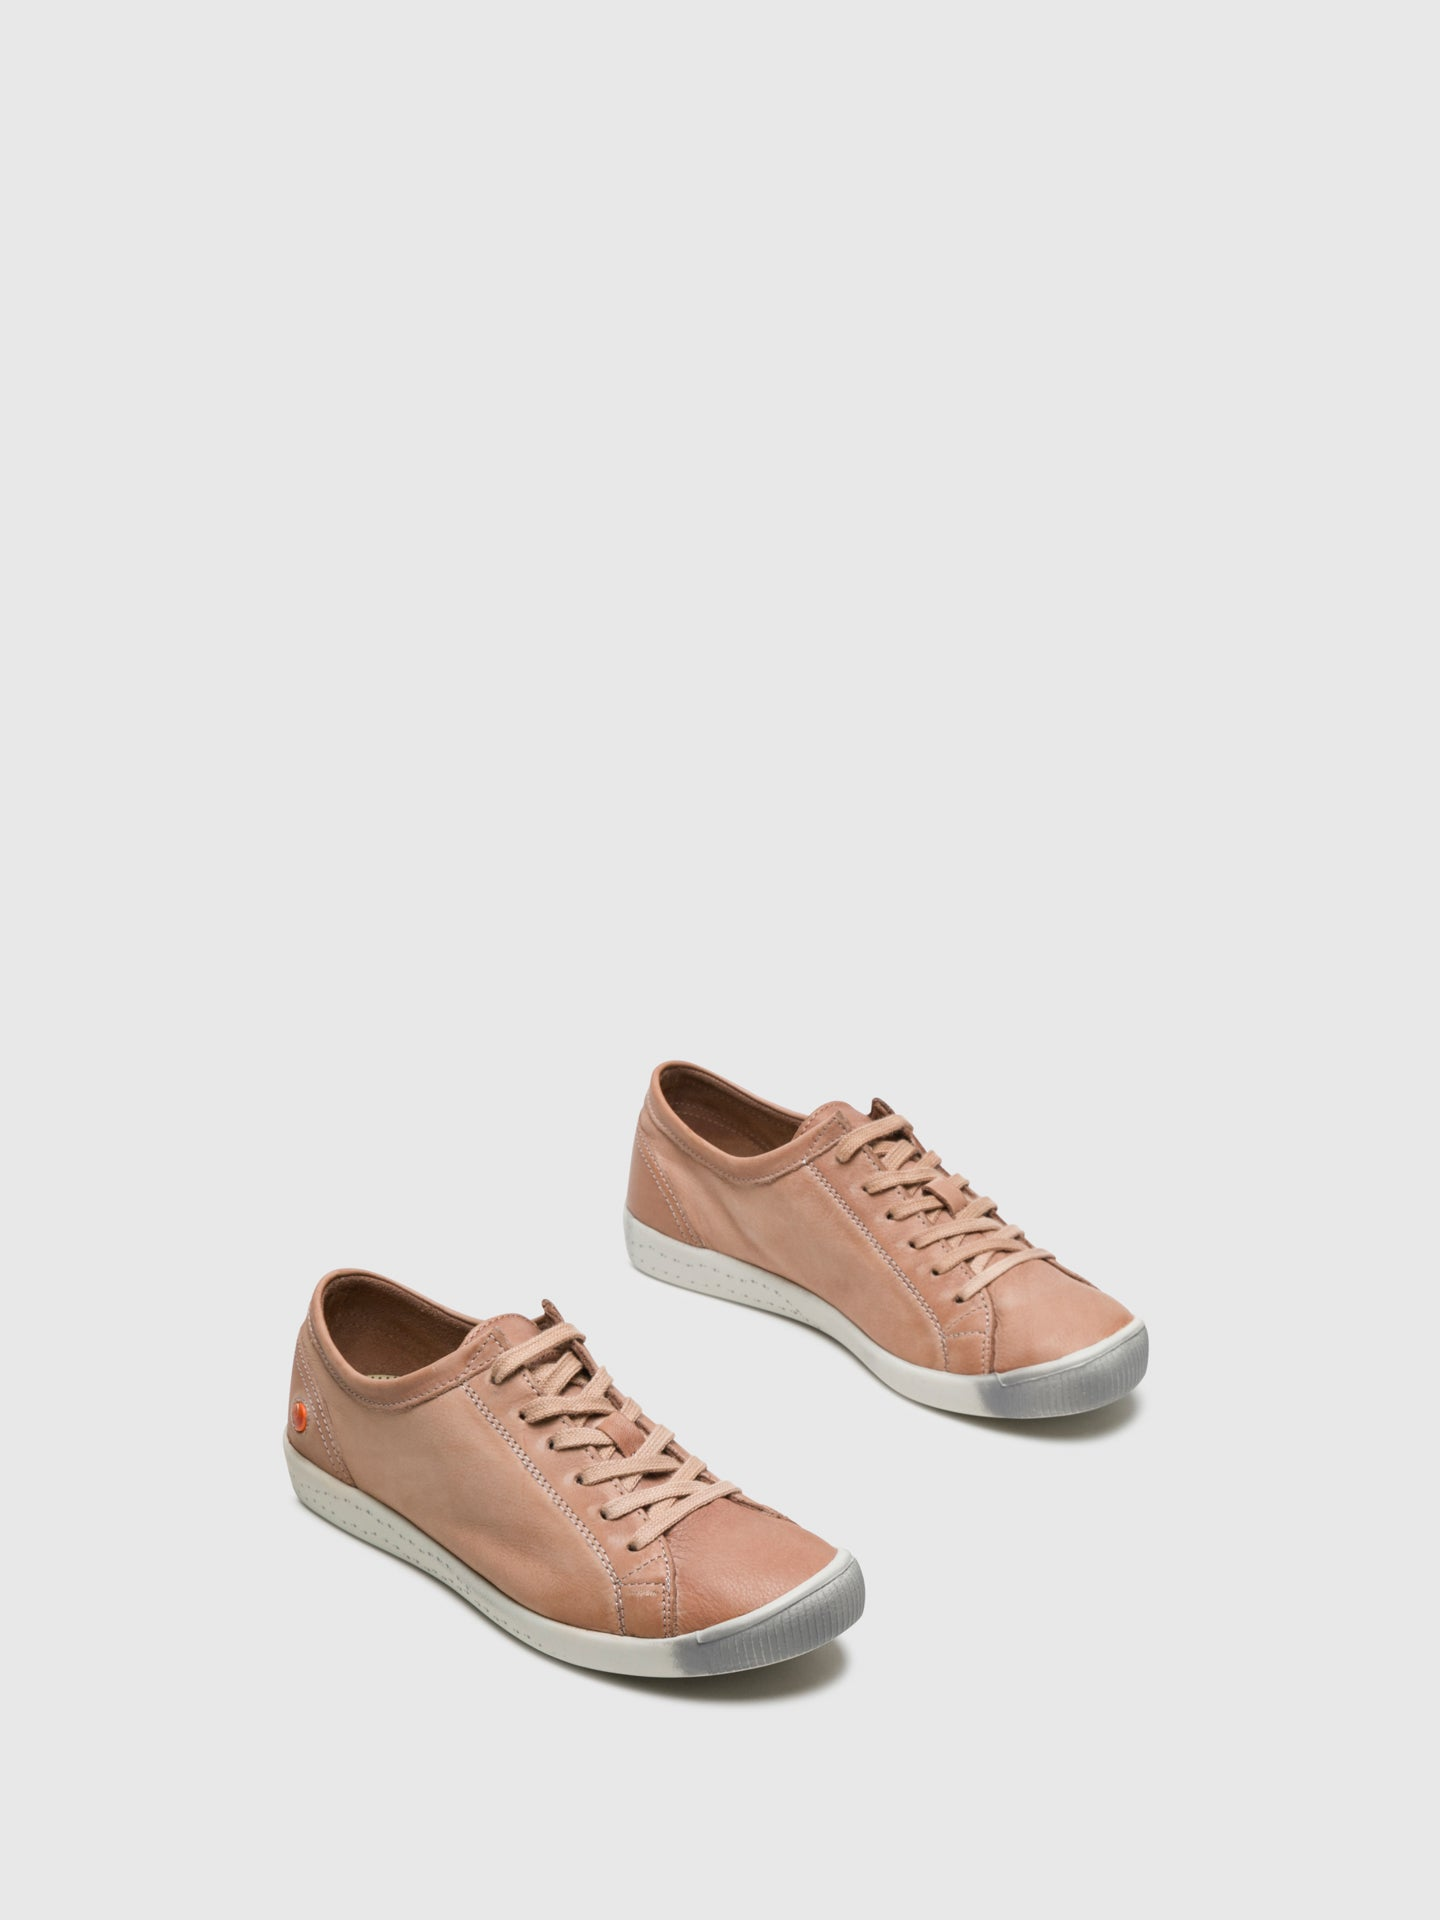 Softinos DarkSalmon Lace-up Sneakers